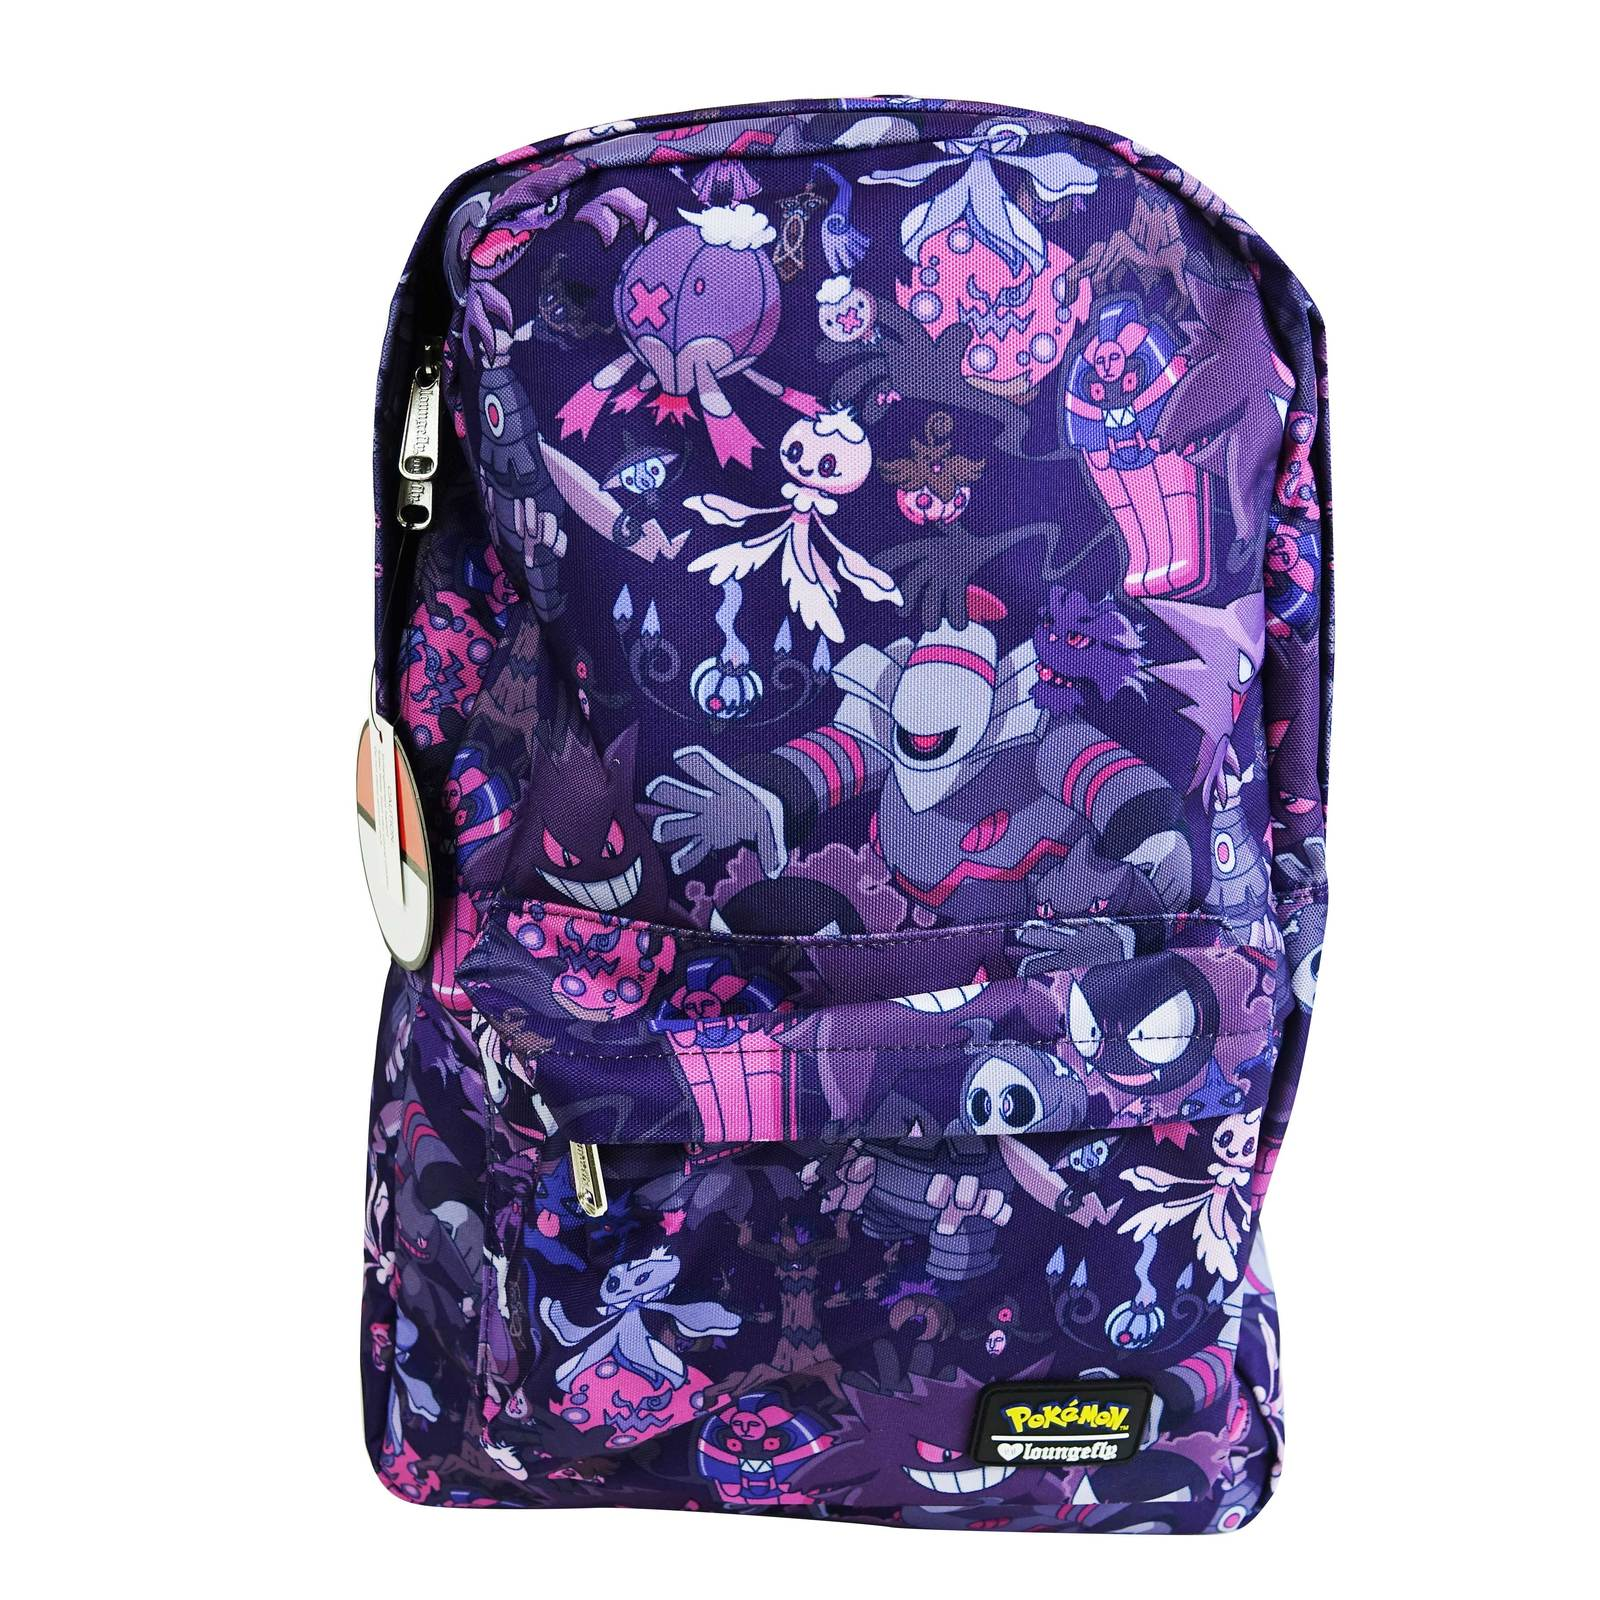 Loungefly Pokemon Ghost Generations Backpack image